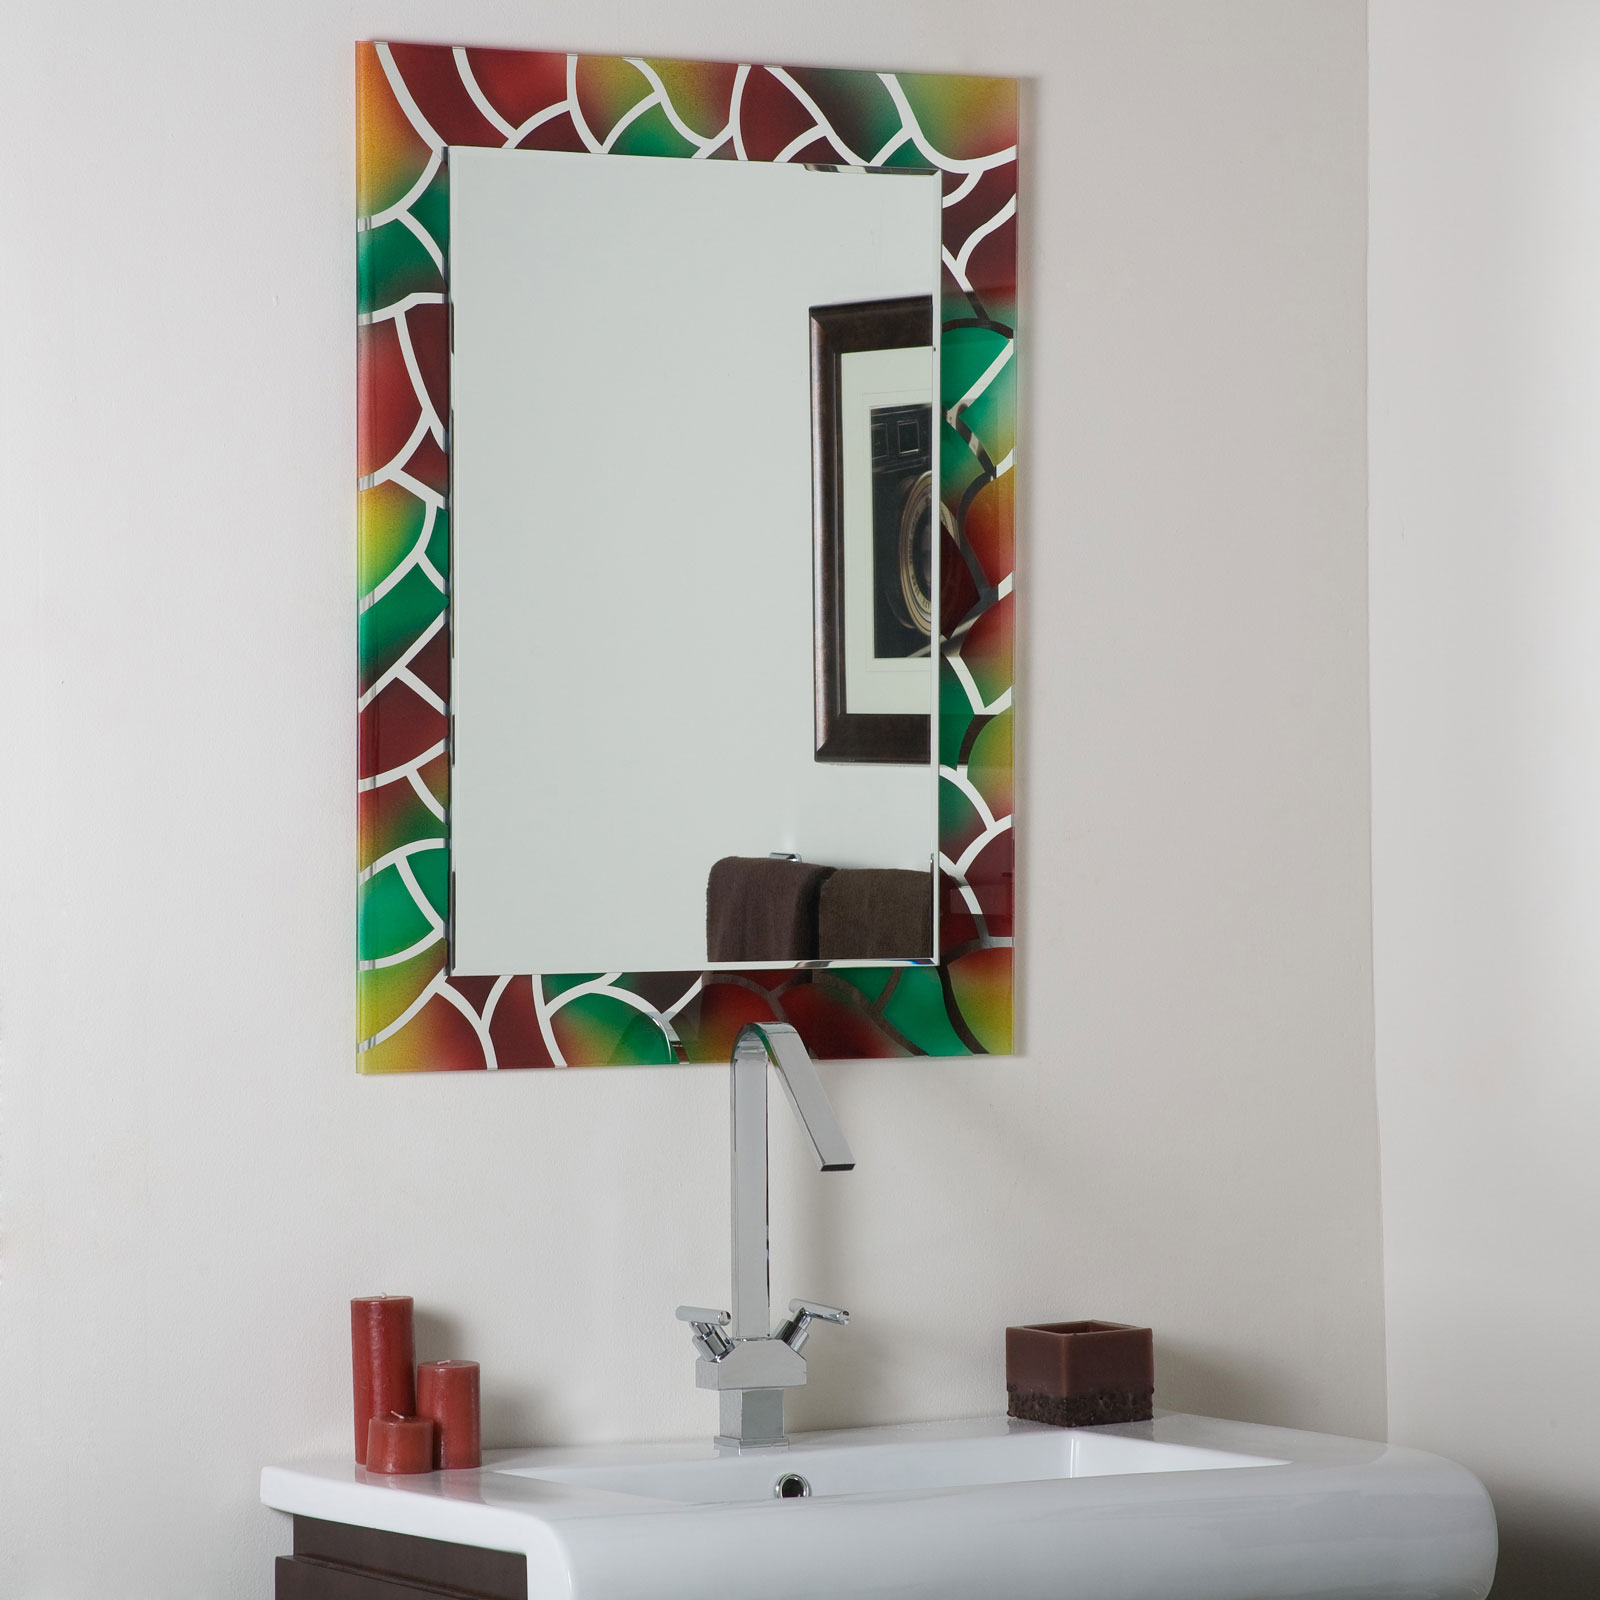 Mosaic Frameless Bathroom Mirror By Decor Wonderland In Frameless Mirrors